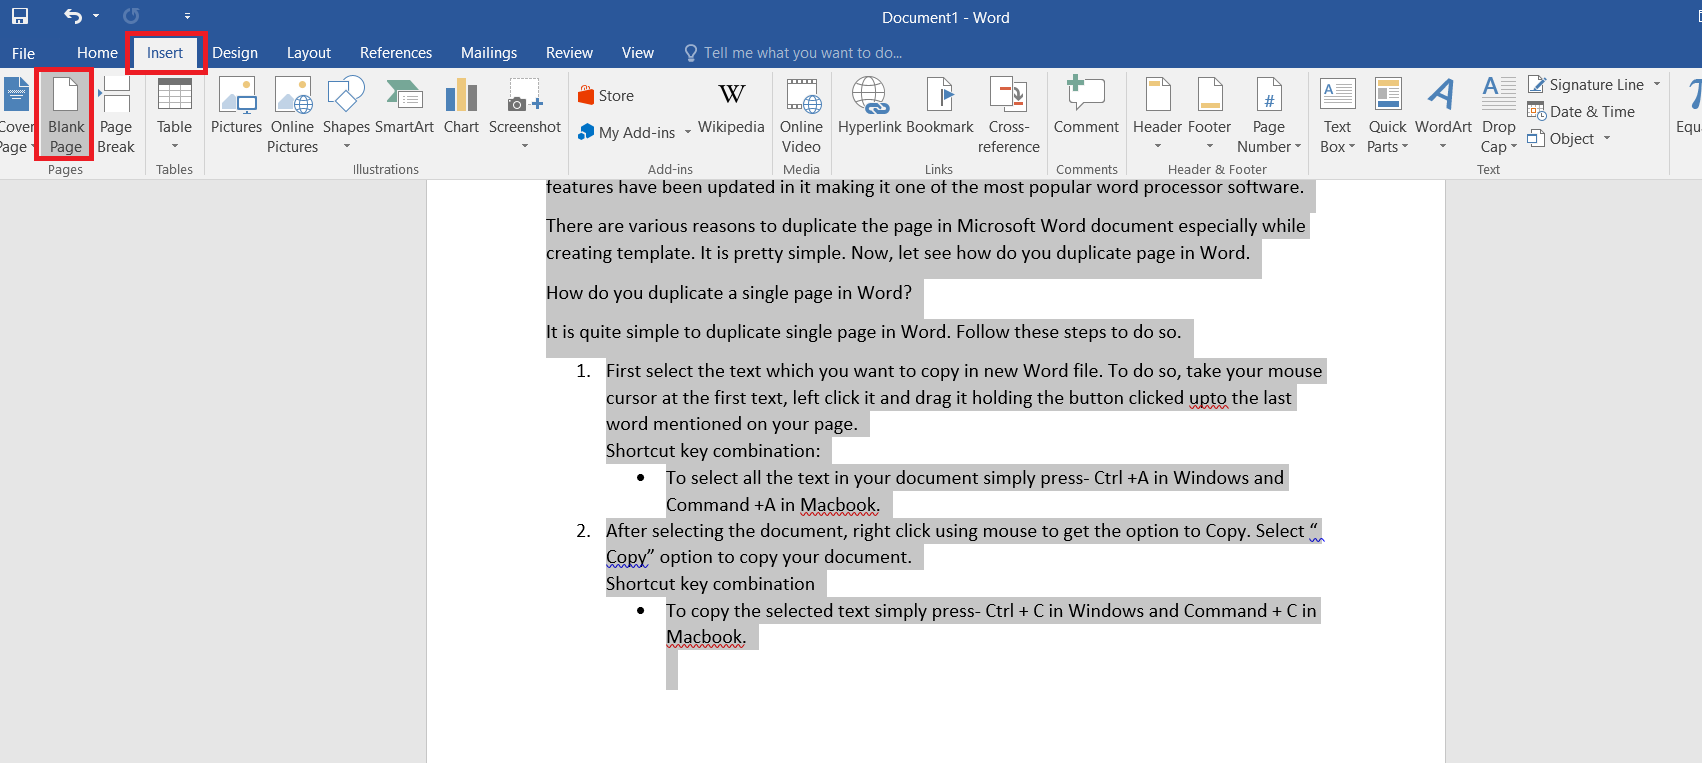 New blank page in Word